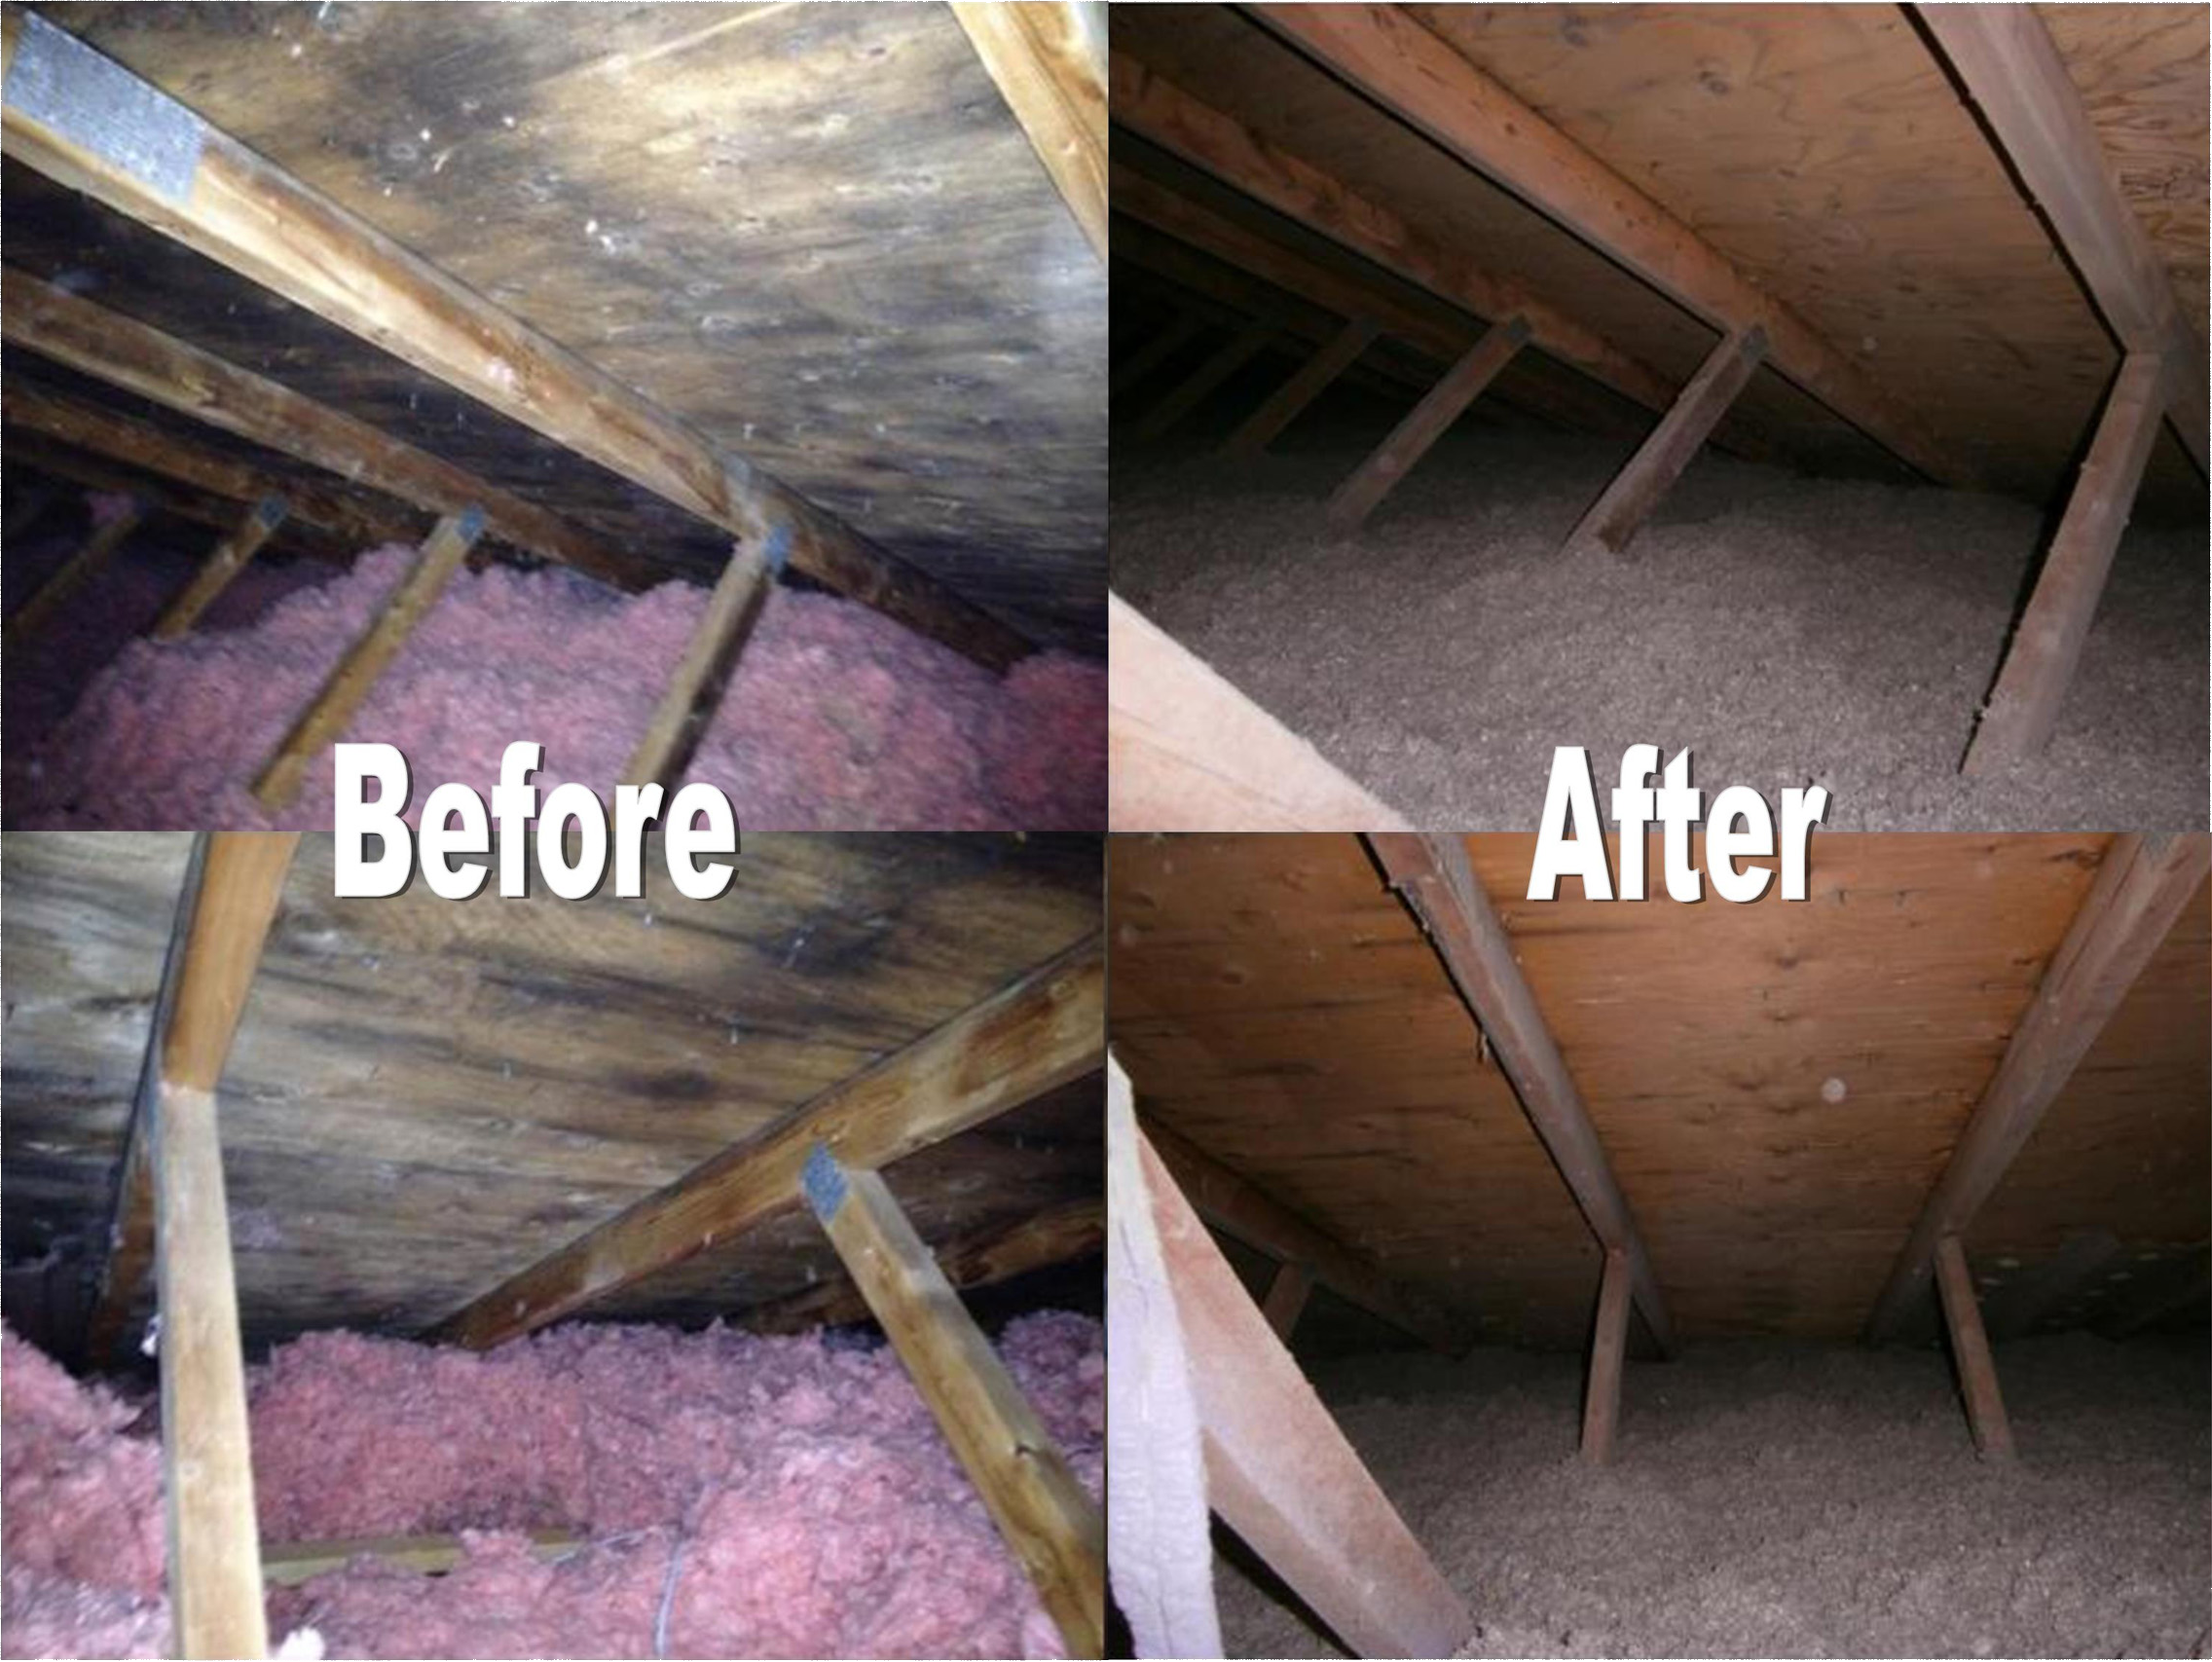 Before and After Mold Removal